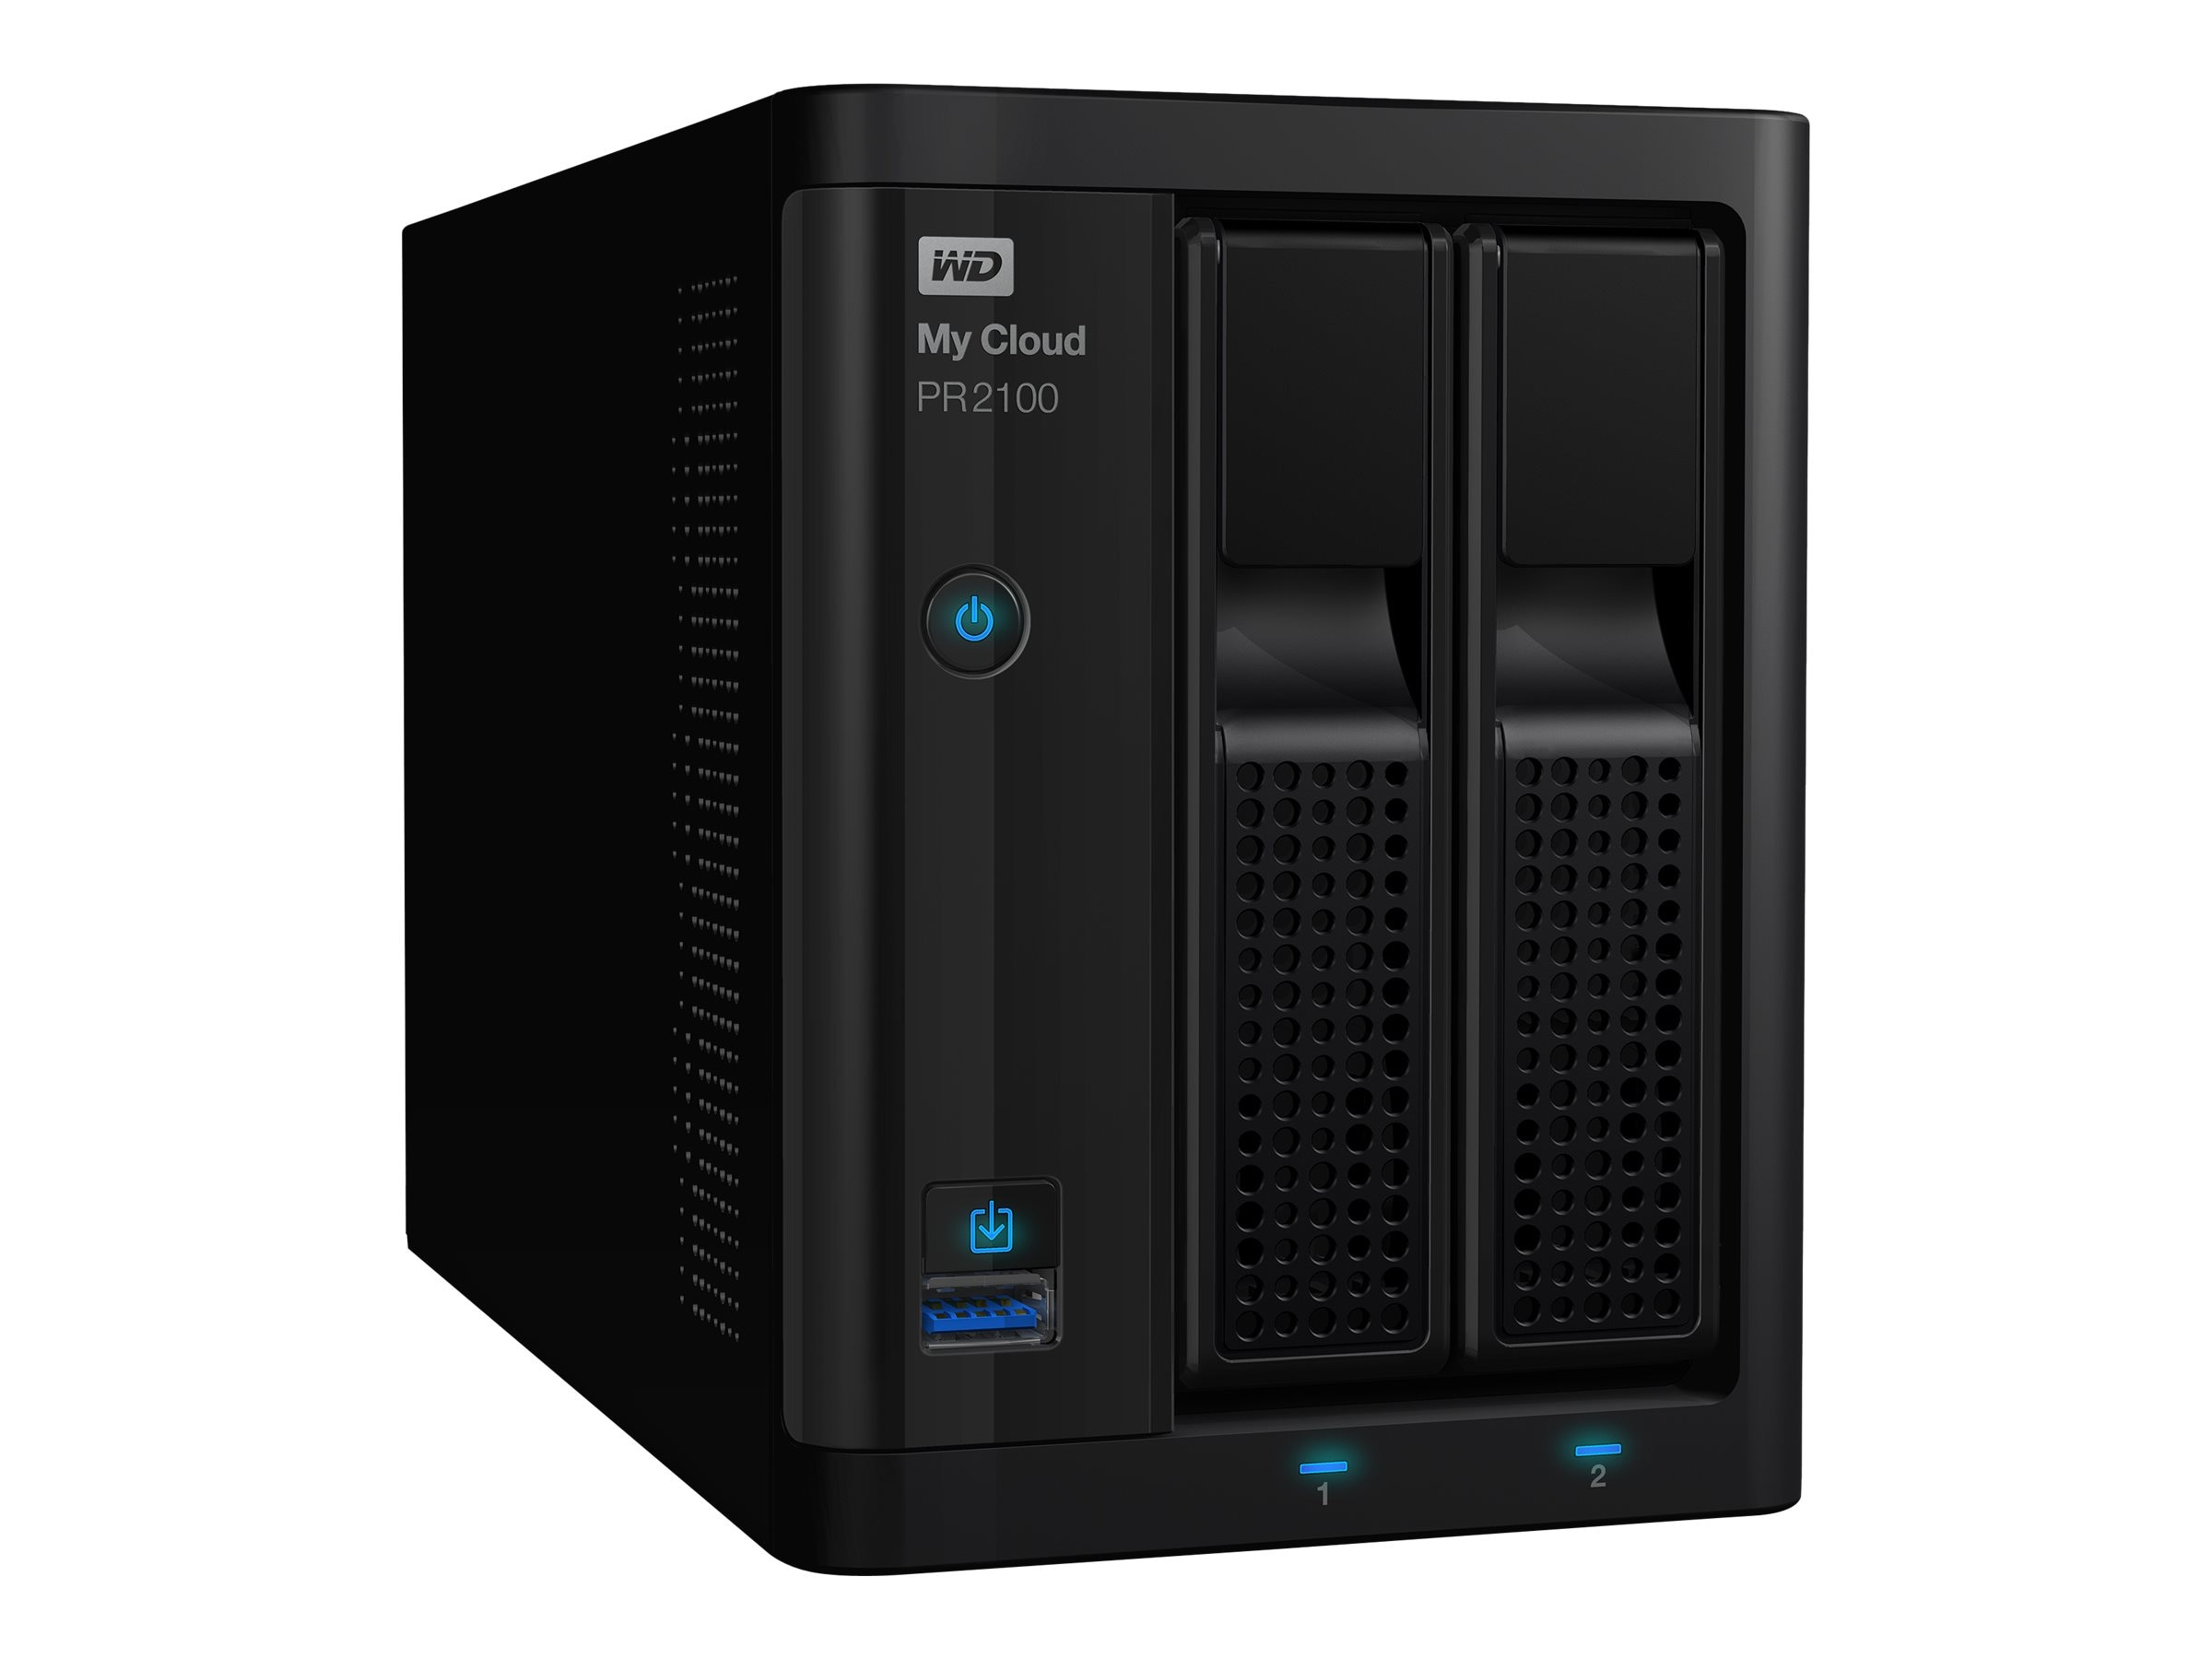 WD 8TB My Cloud Pro Series PR2100 Storage, WDBBCL0080JBK-NESN